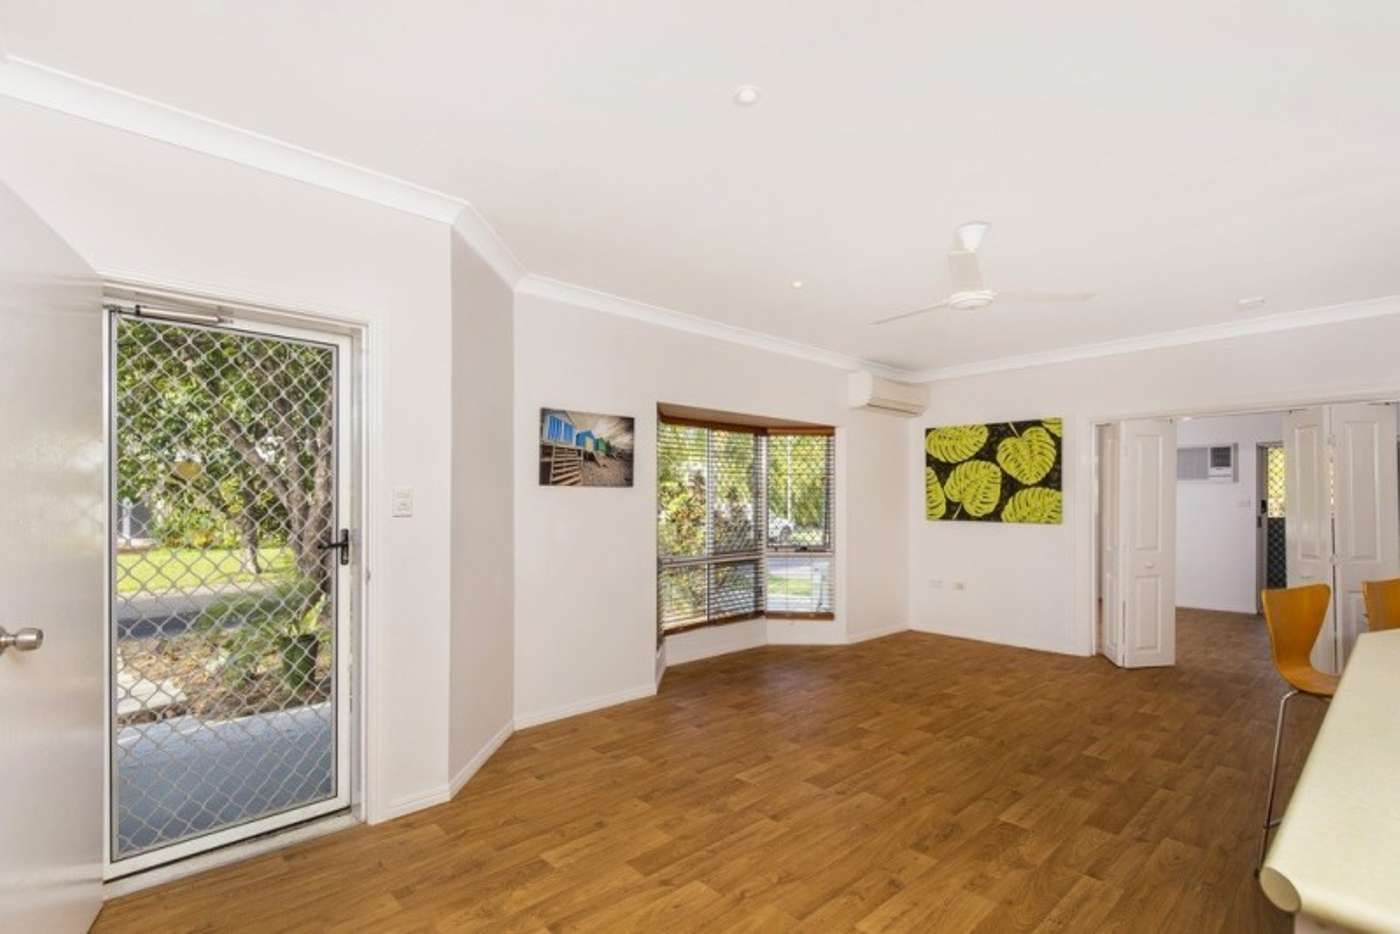 Seventh view of Homely house listing, 19 Albatross Street, Kewarra Beach QLD 4879